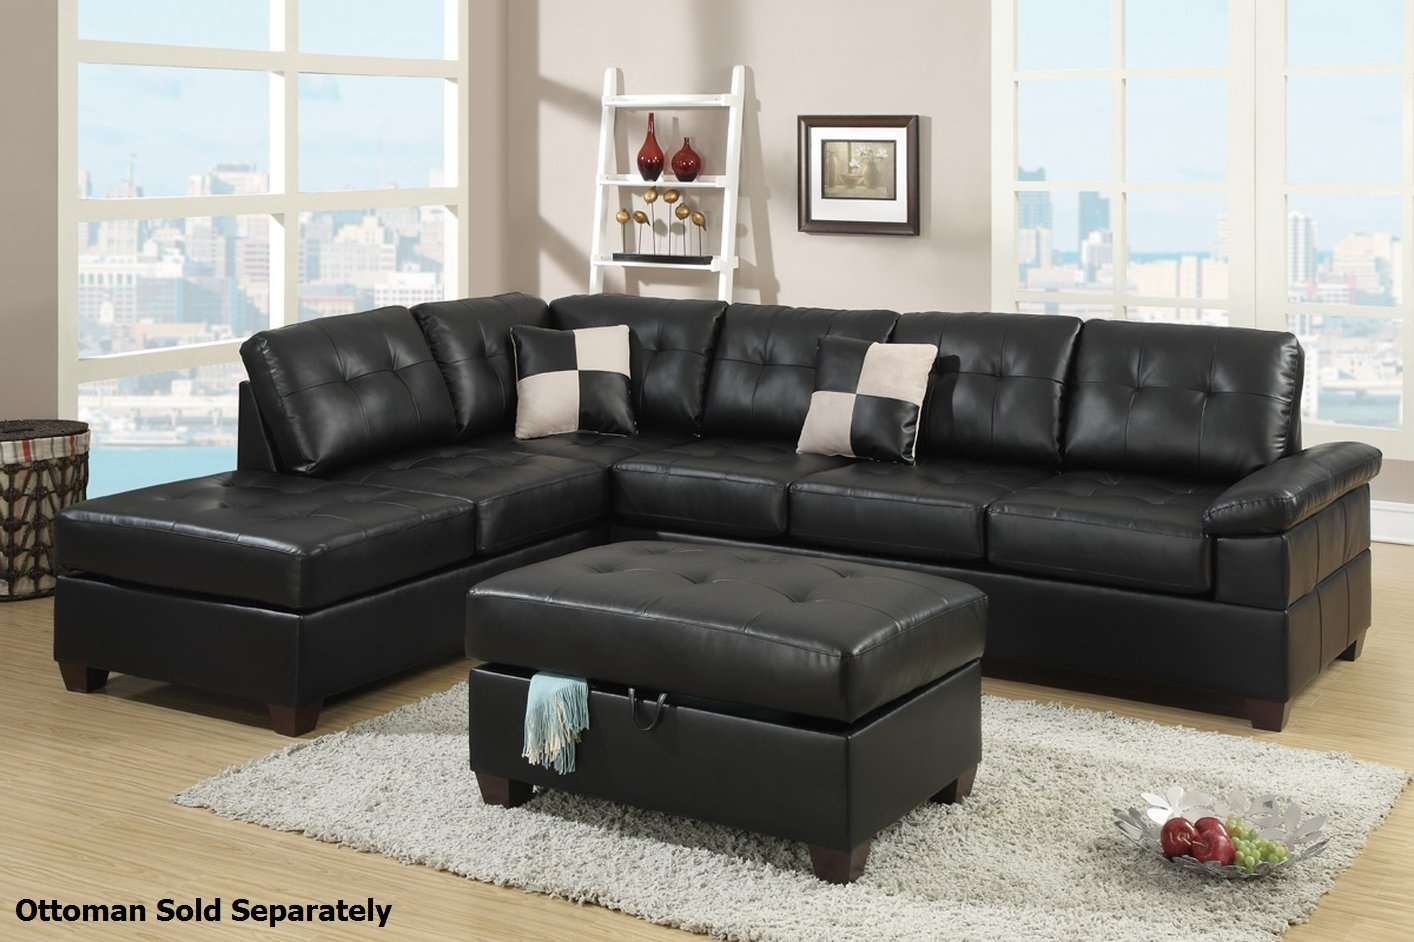 Beautiful Sectional Sofas Rooms To Go 77 For Office Sofa Ideas With Intended For Rooms To Go Sectional Sofas (View 7 of 10)